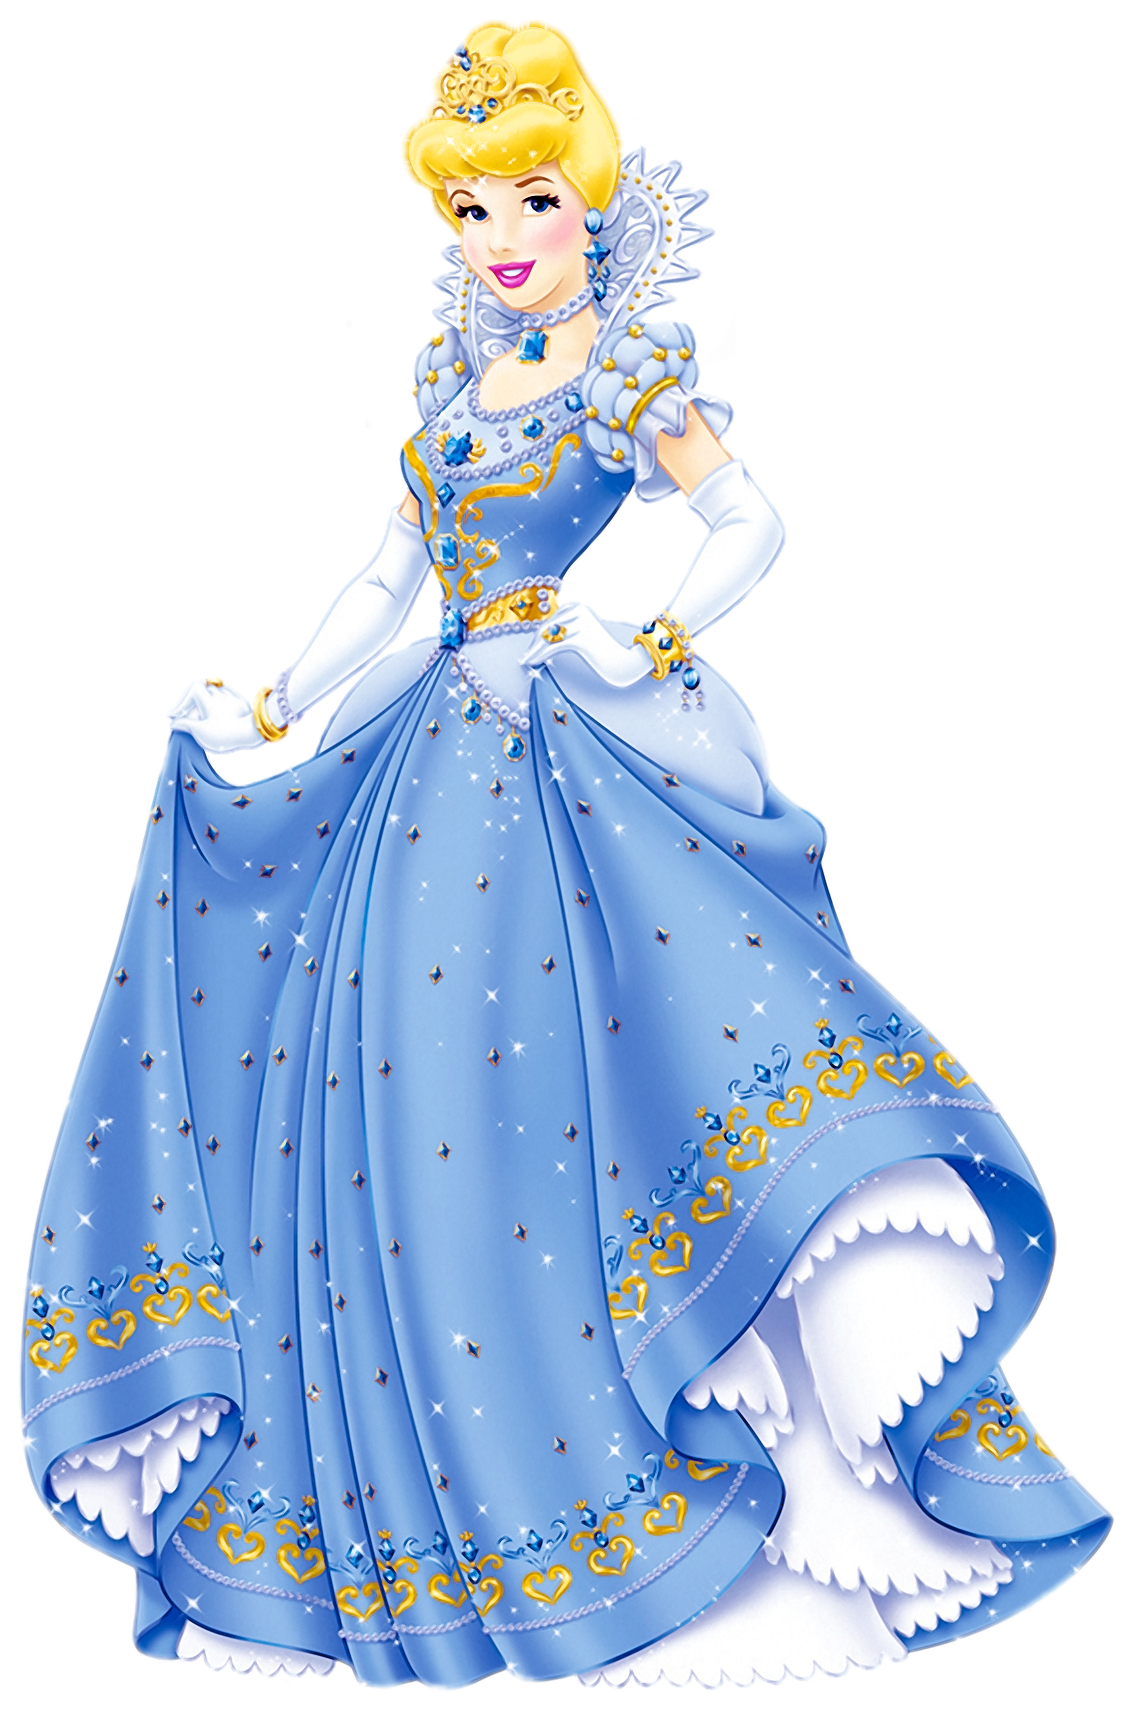 Princess free download mario. Clipart whale girly